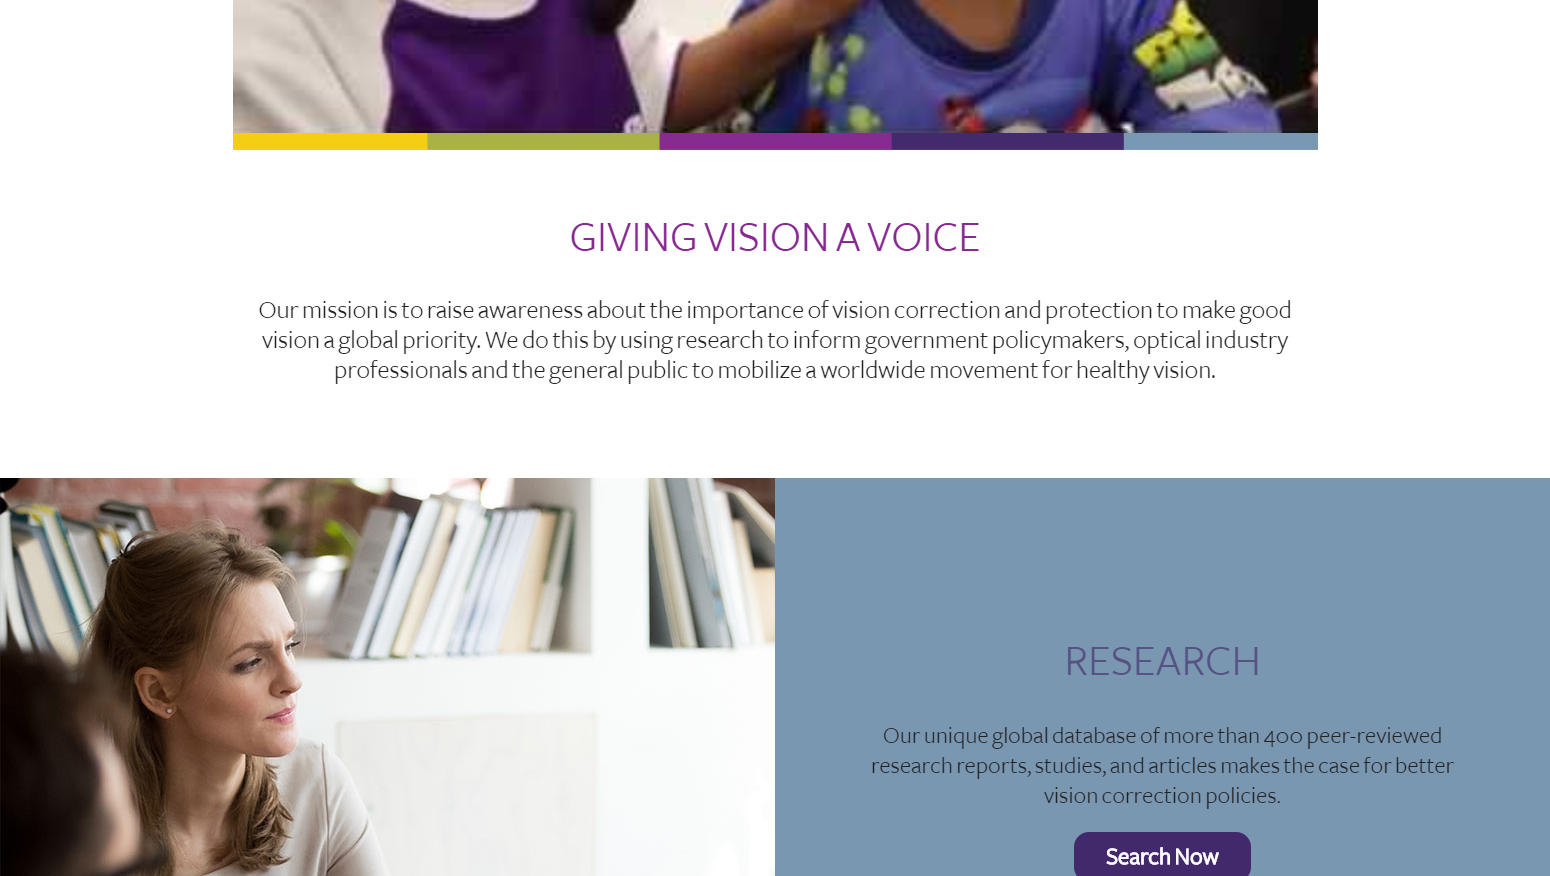 Vision Impact Institute - Giving Vision a Voice